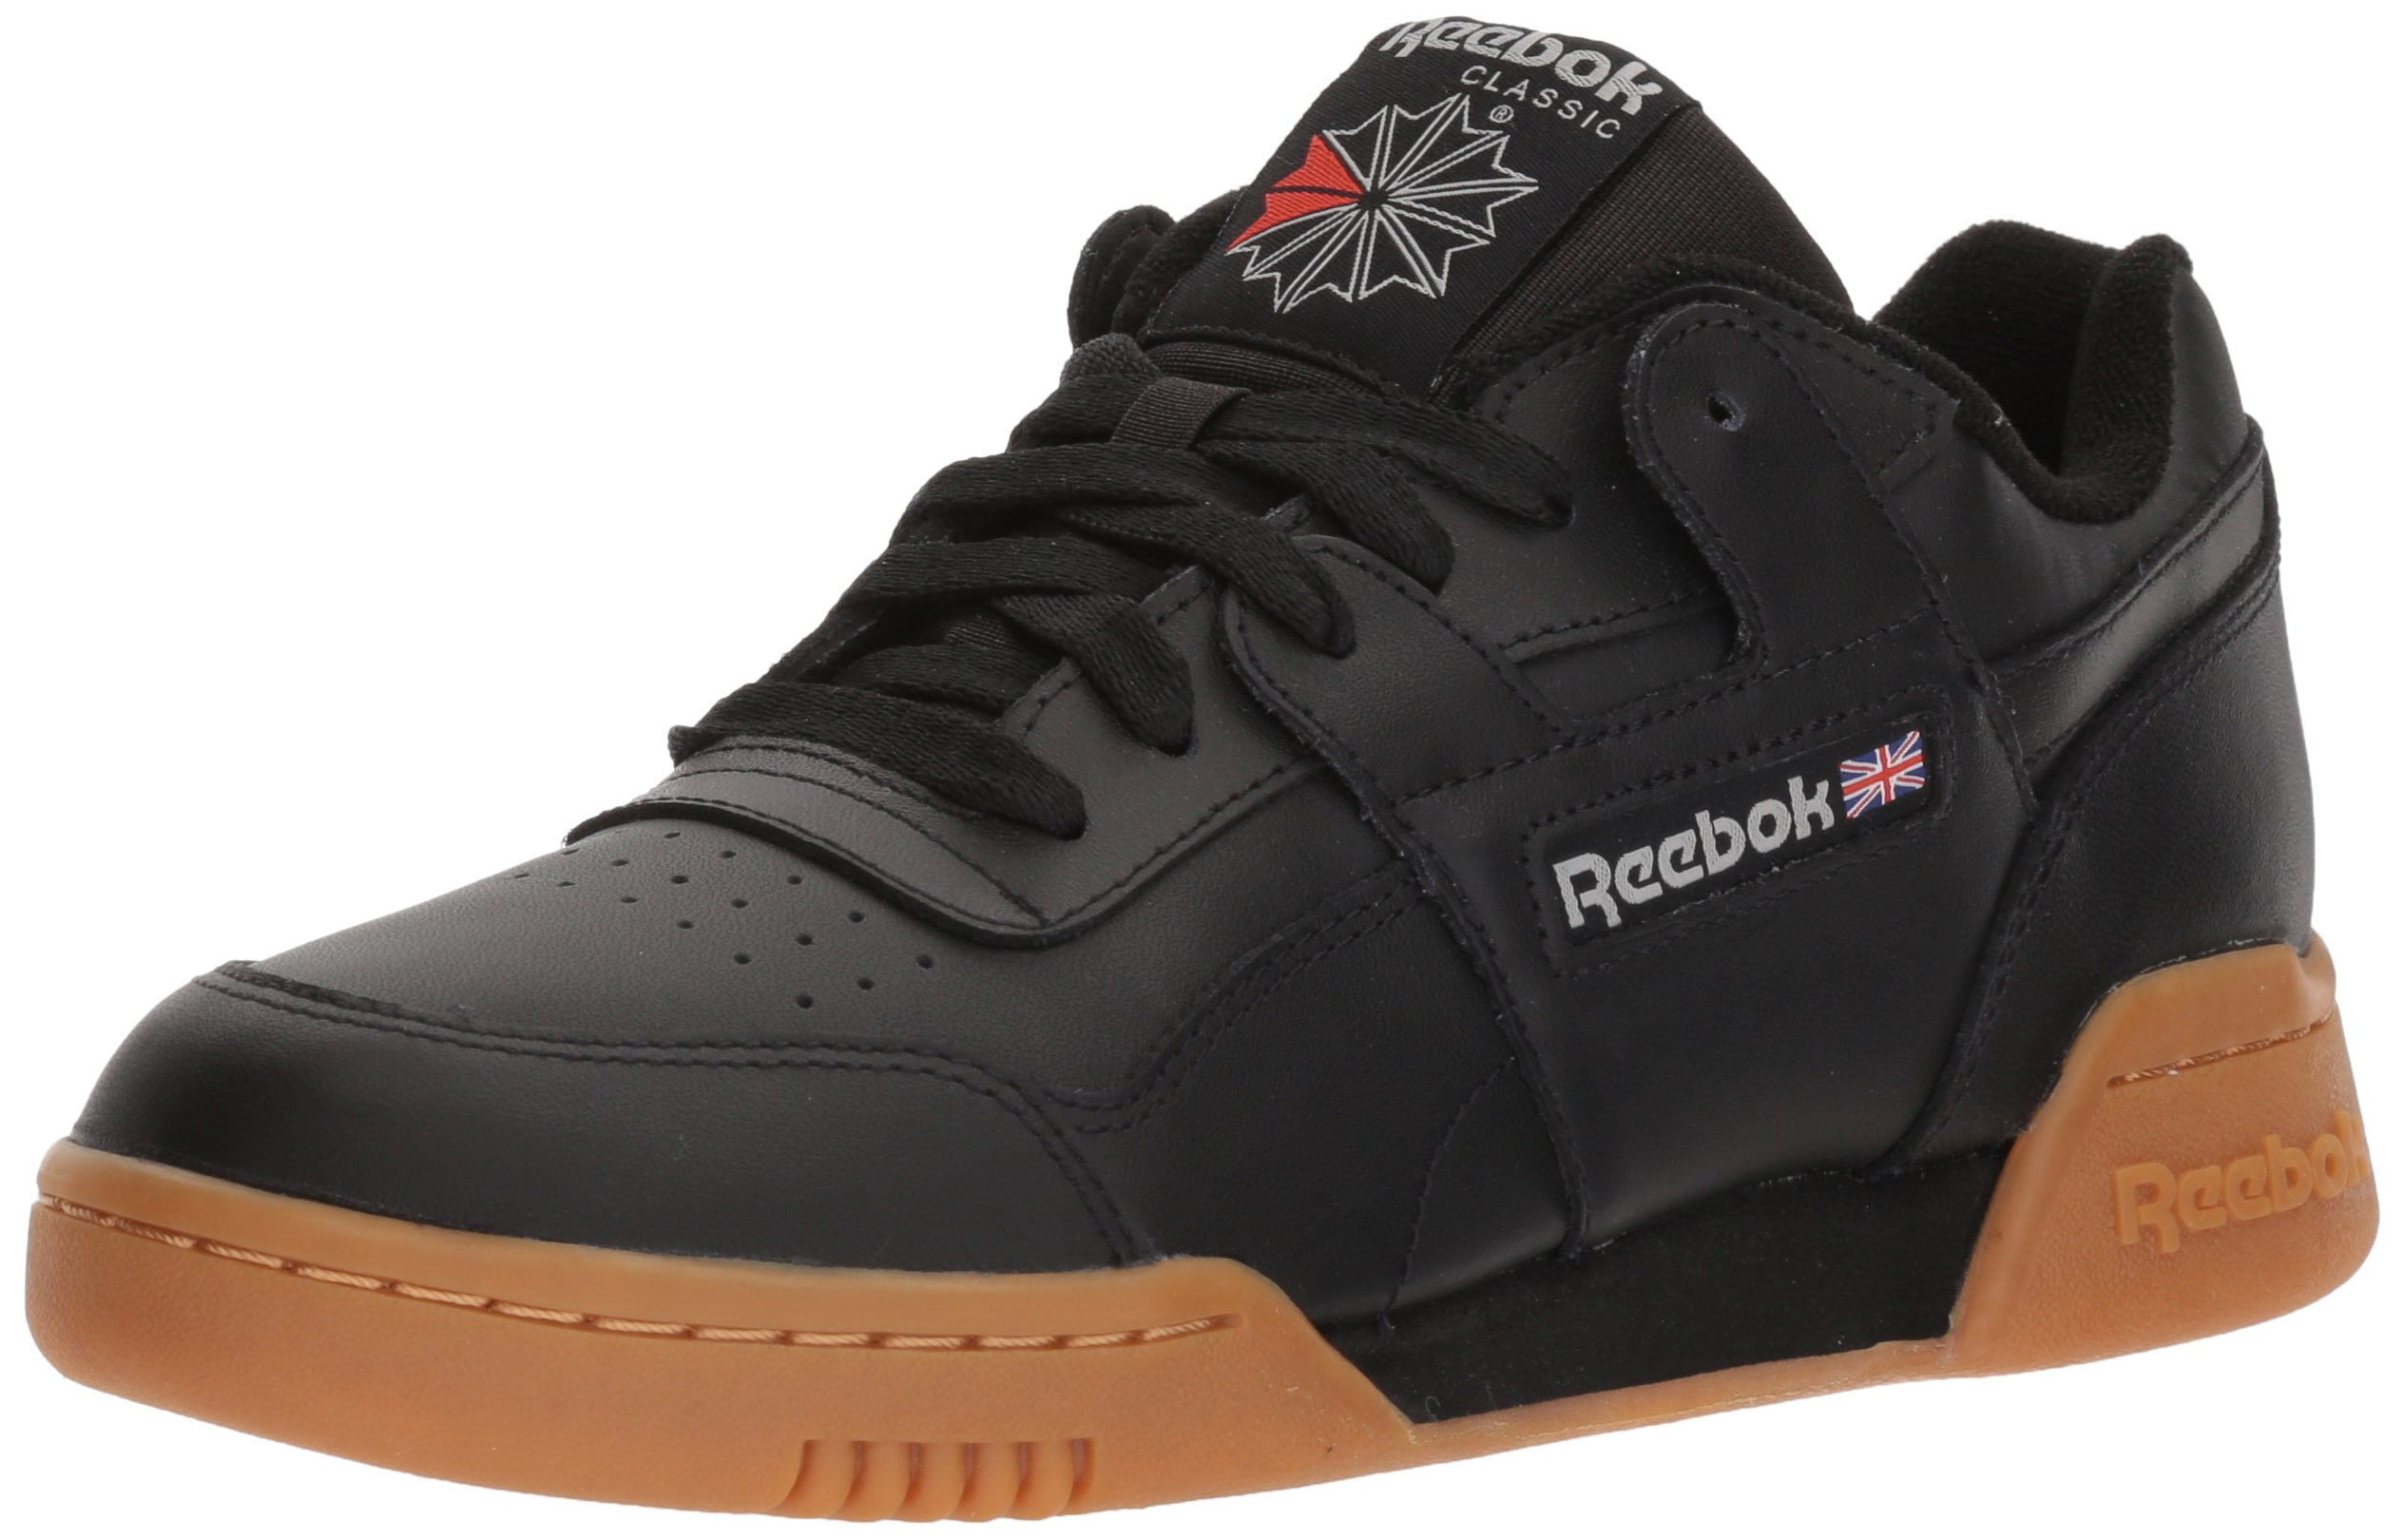 Trainer Trainer Trainer Trainer Deals On Line Reebok Finn Finn Finn At Billige q41tvzwxq